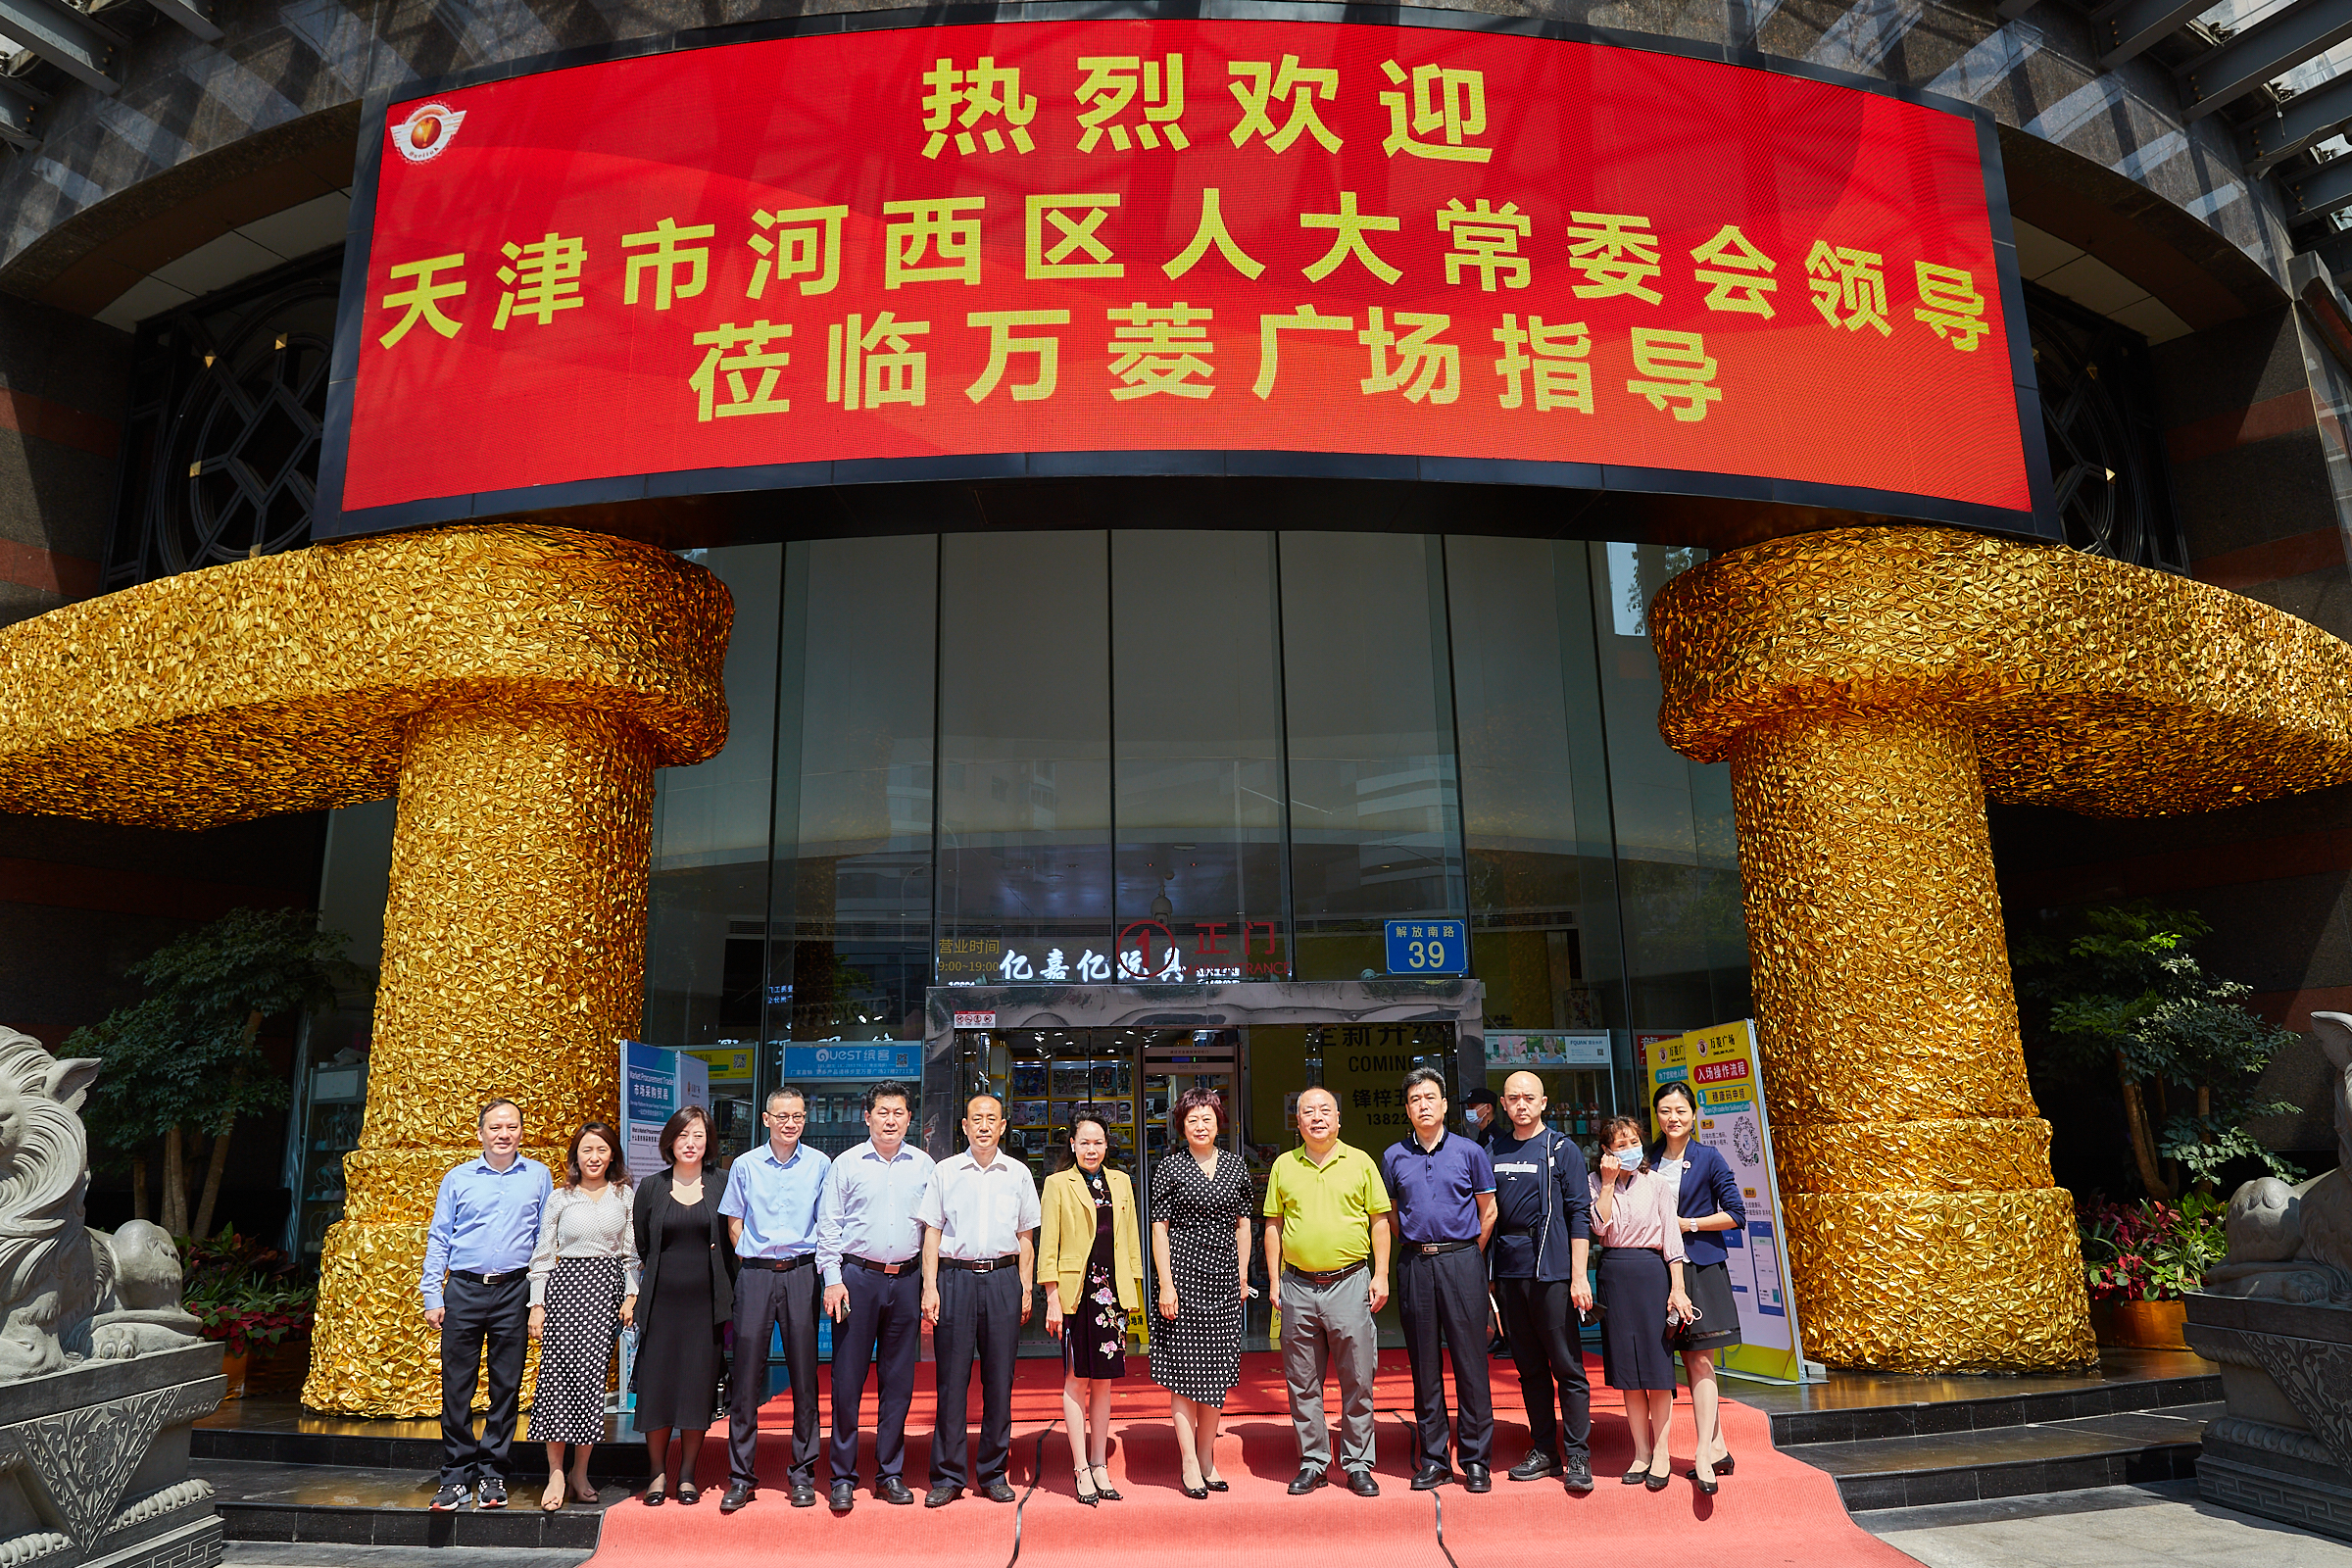 Leaders of Tianjin Hexi District People's Congress Standing Committee visited Wanling square